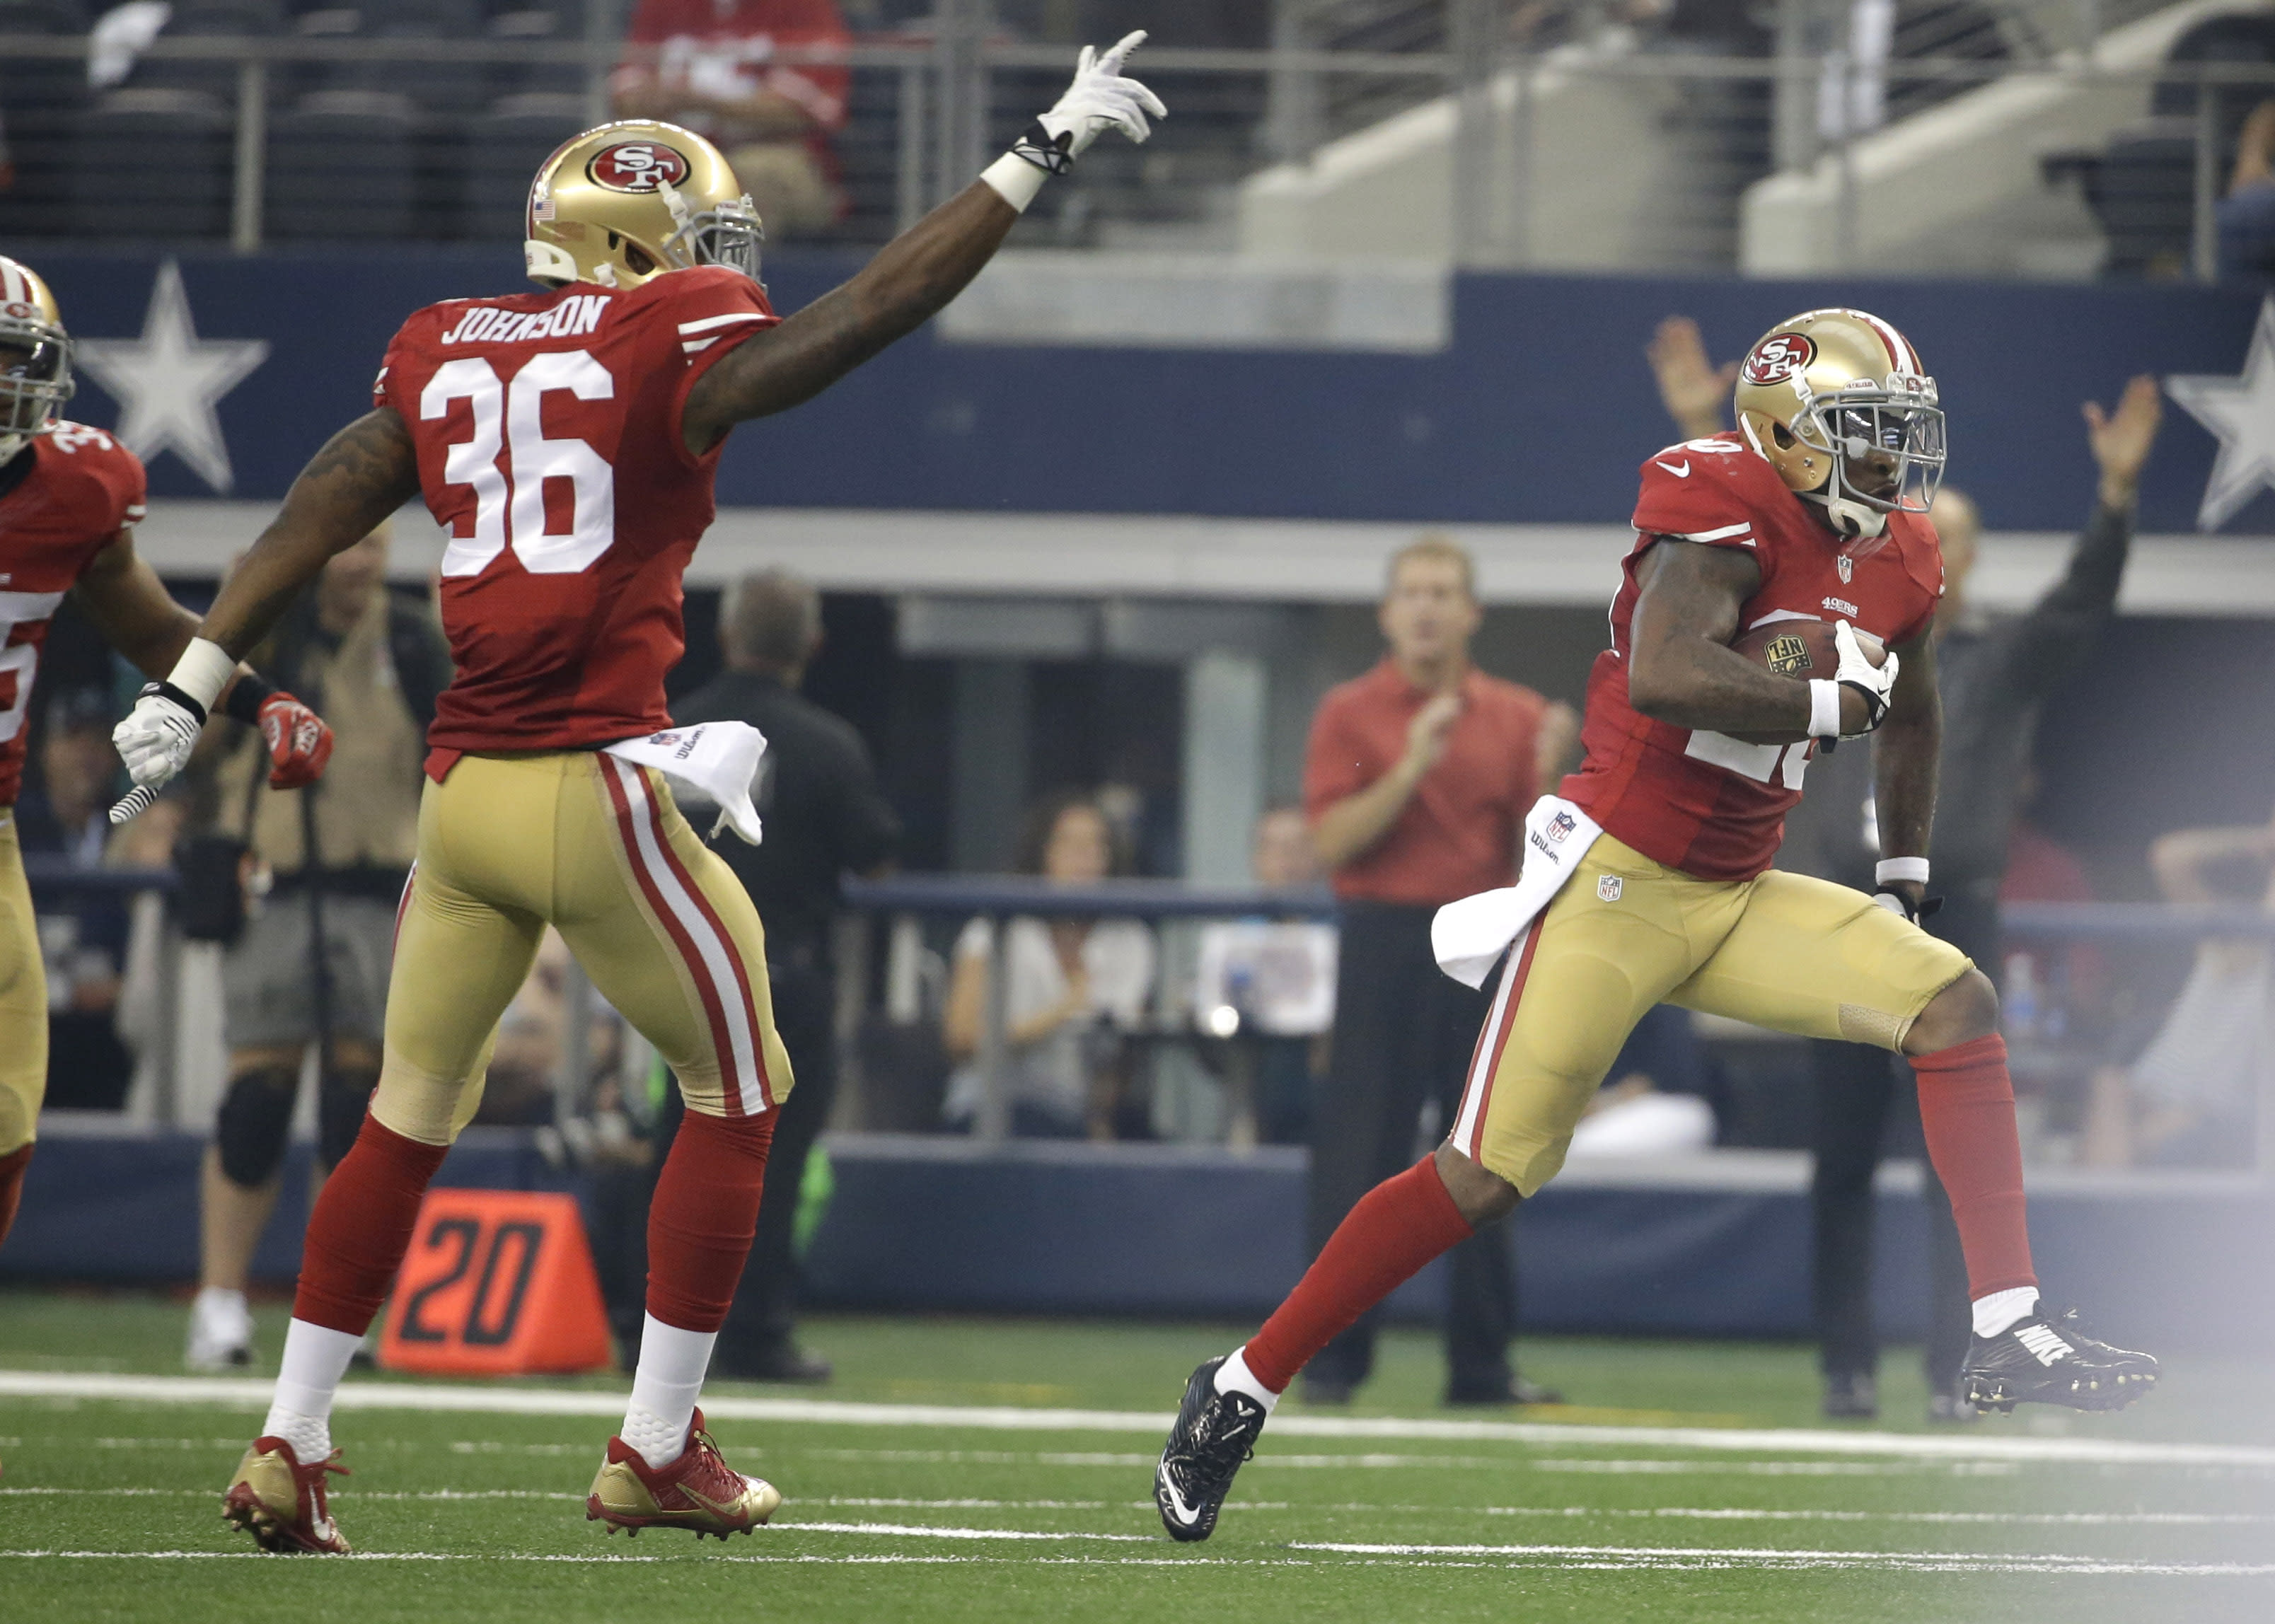 49ers Cbs Johnson Cox Step Up After Injuries